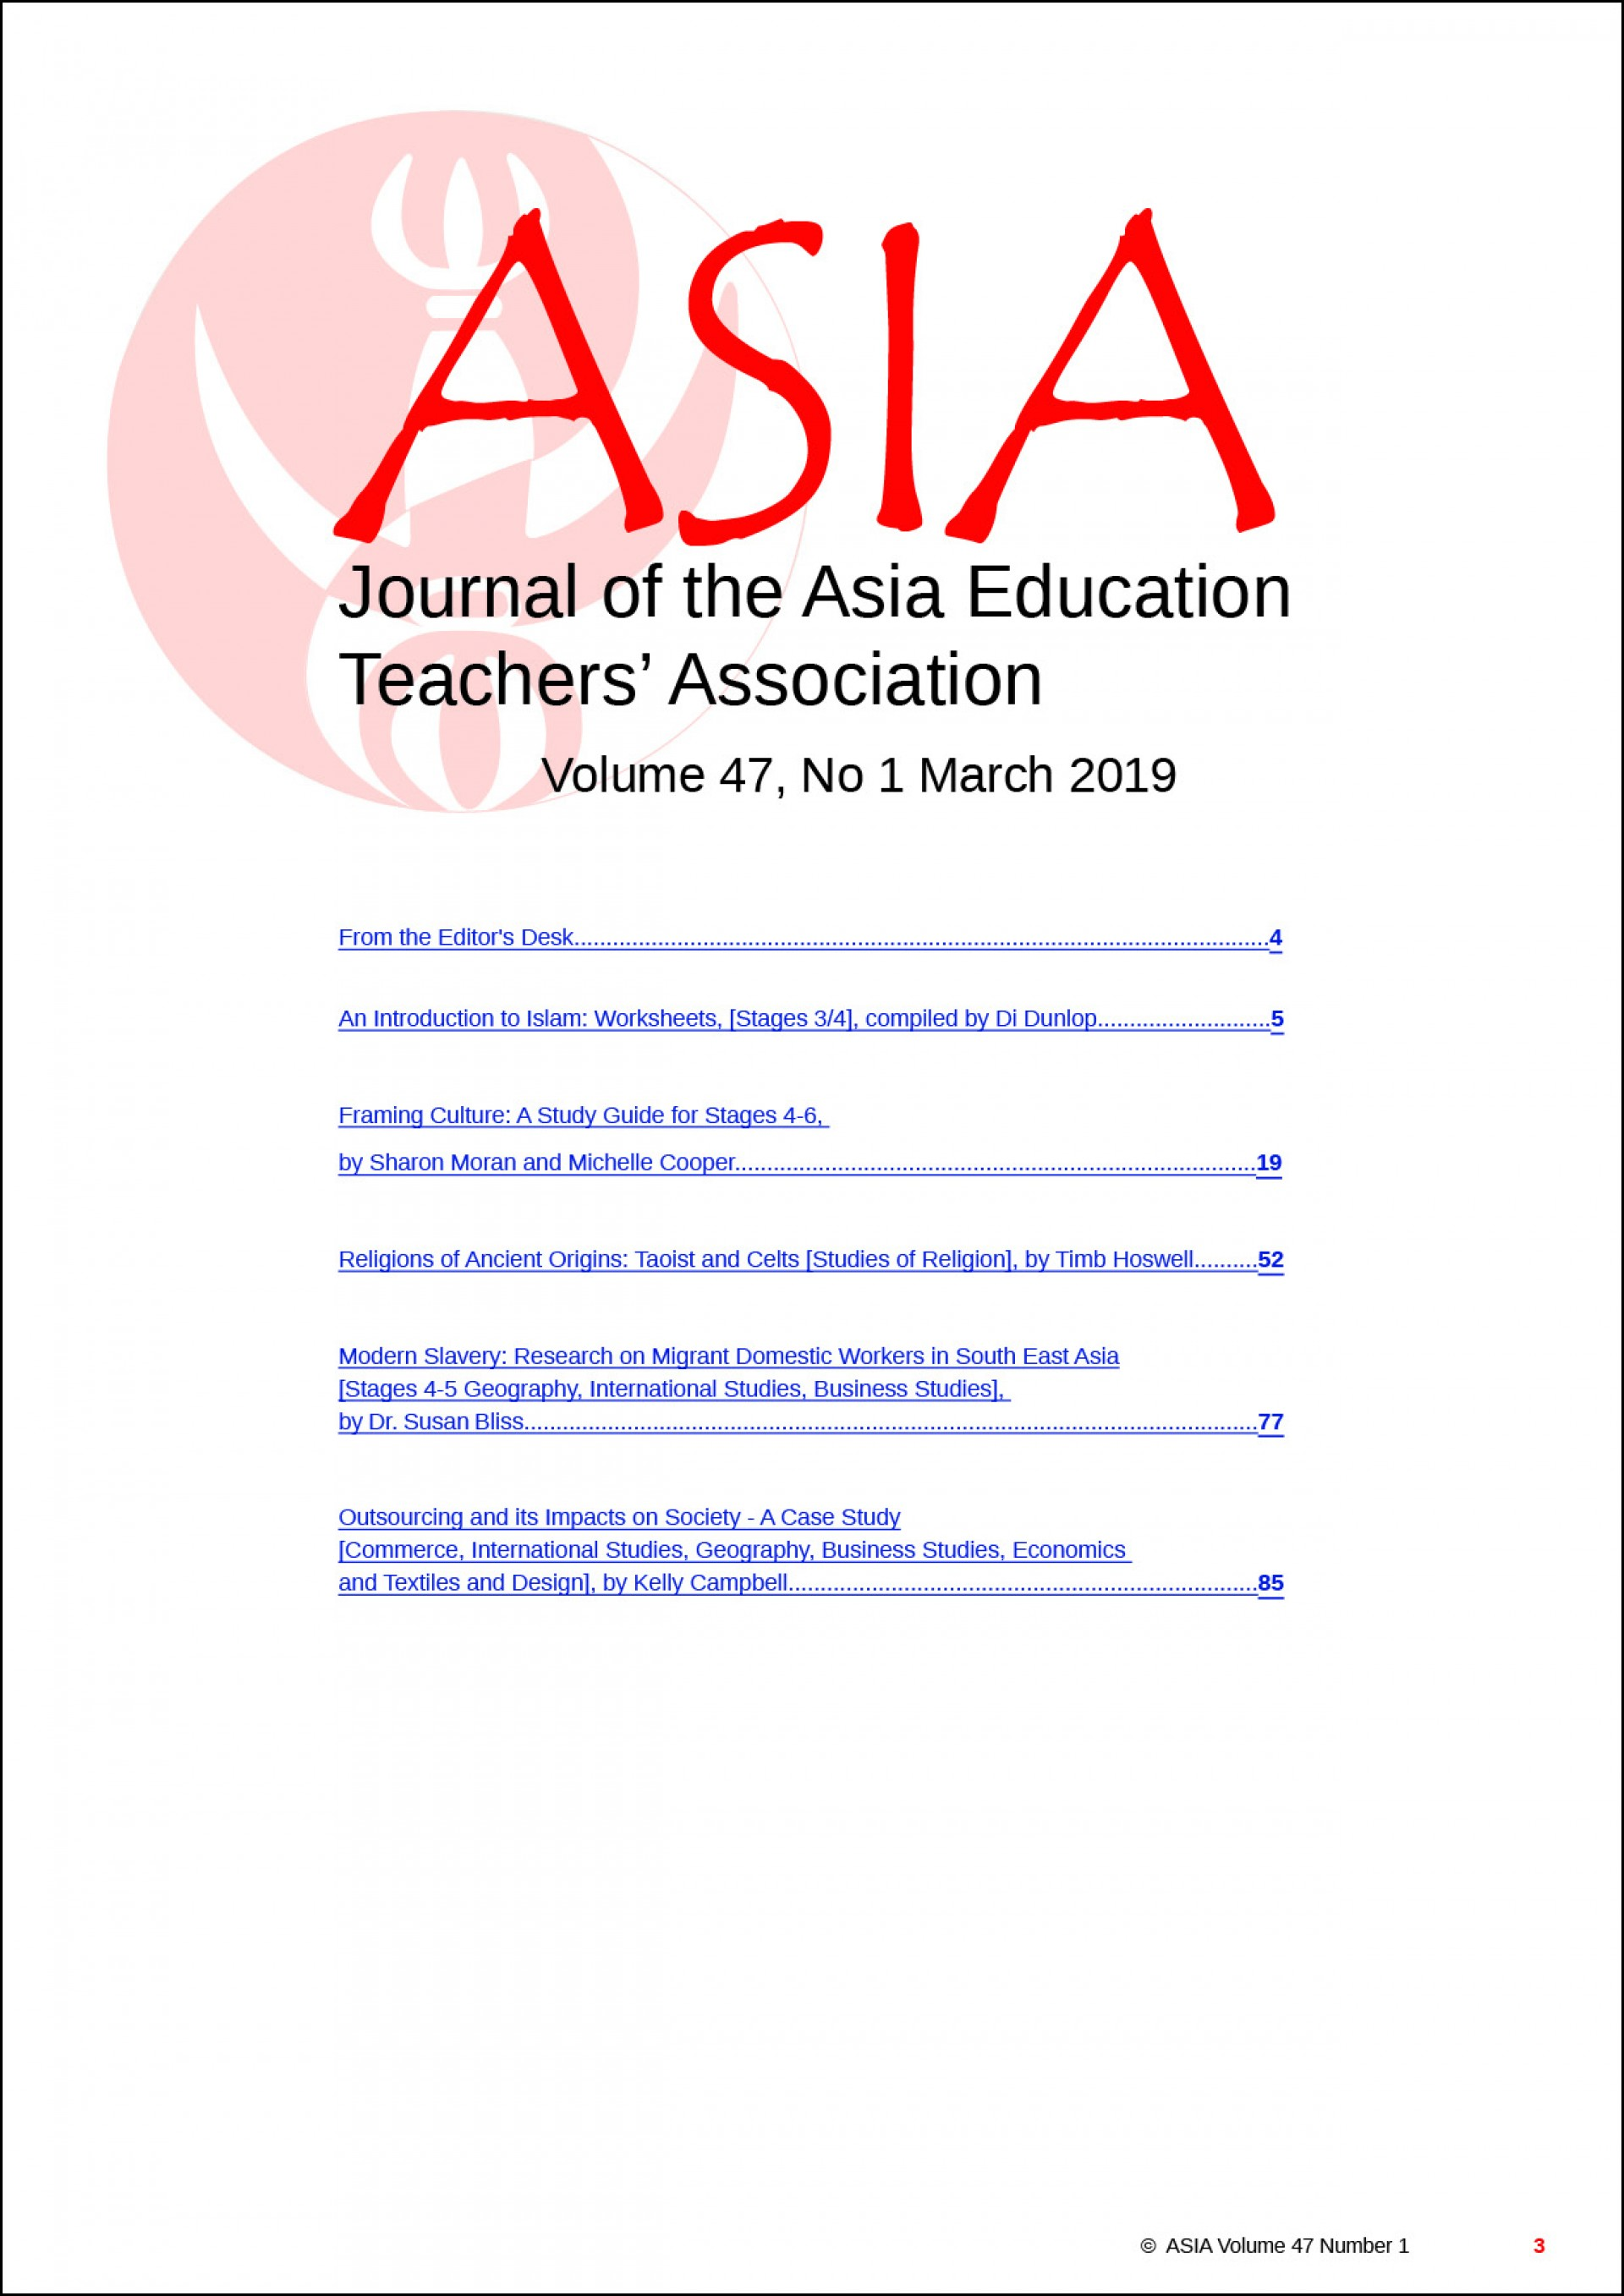 028 Free Download Researchs On Education Contents  Asiajournal Vol47 No1 March2019 Stunning Research Papers1920